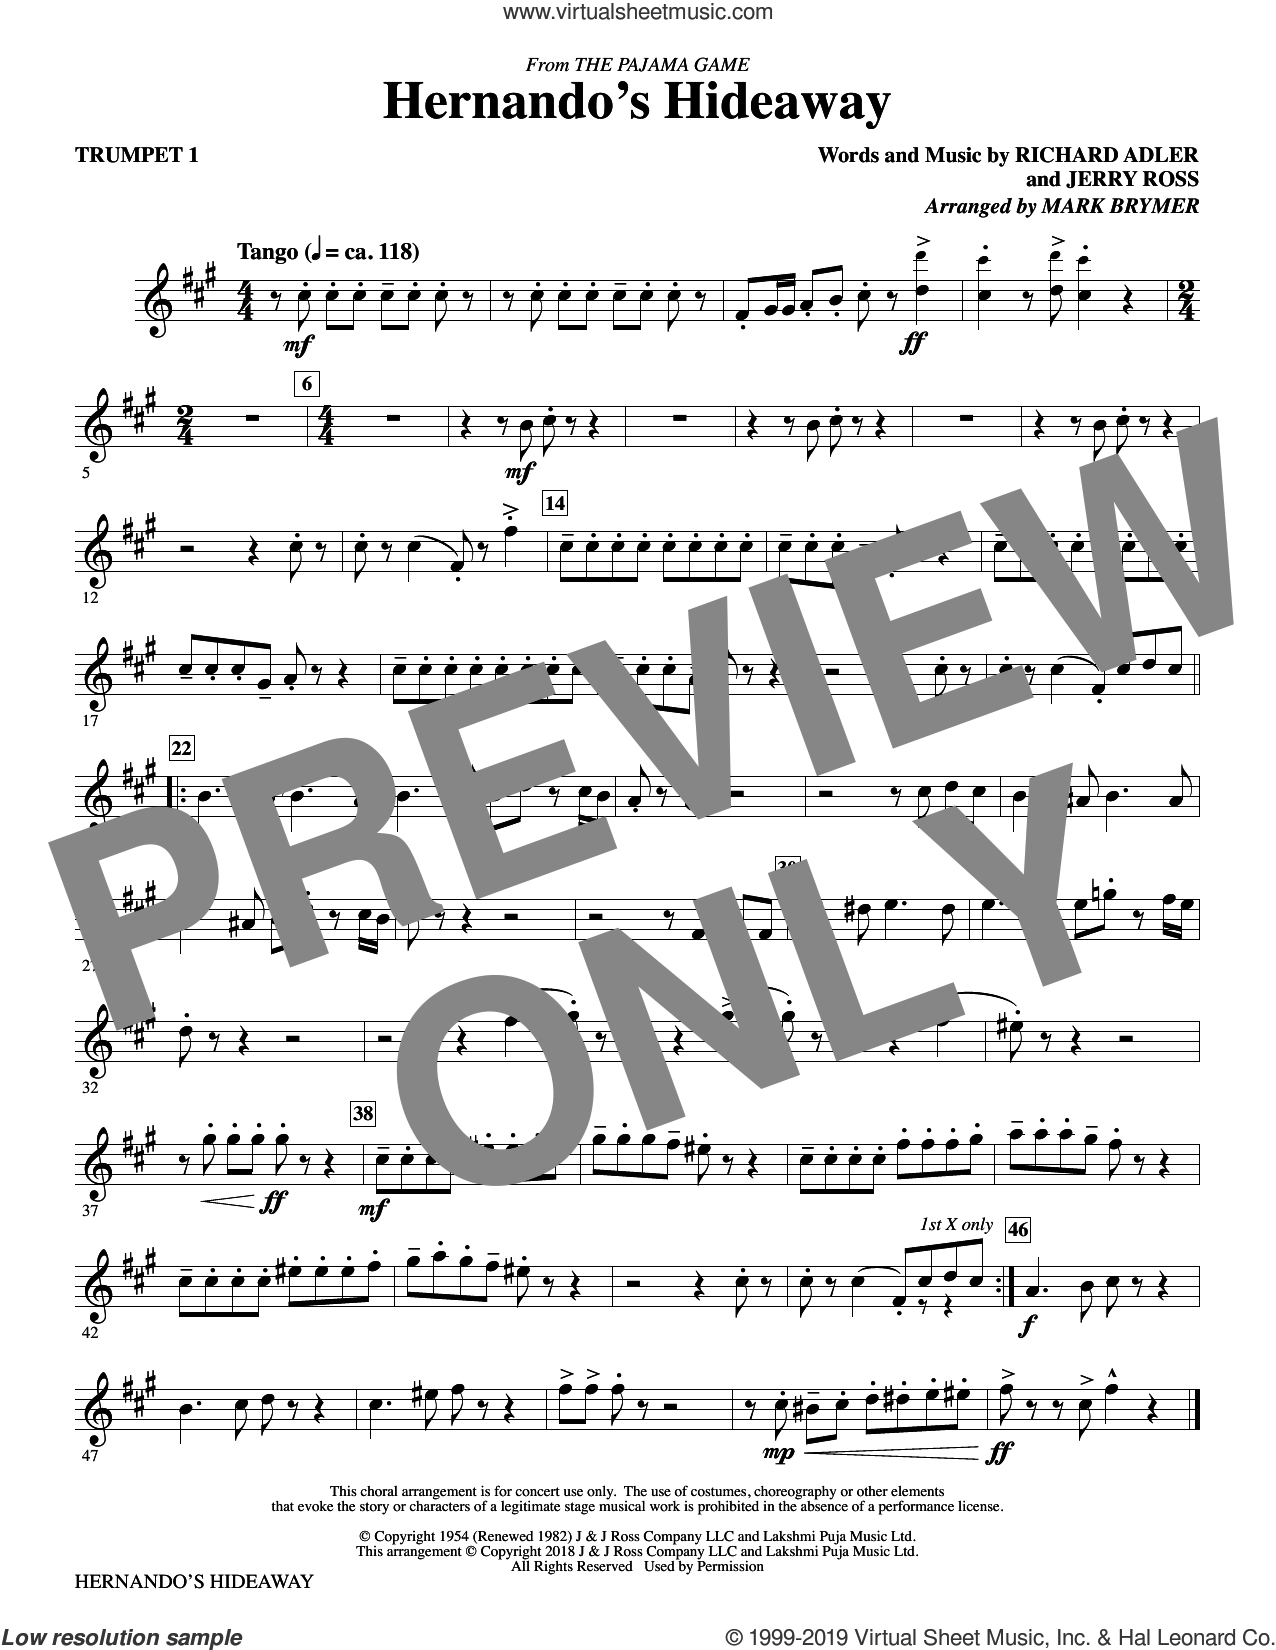 Hernando's Hideaway (complete set of parts) sheet music for orchestra/band by Mark Brymer, Jerry Ross and Richard Adler, intermediate skill level